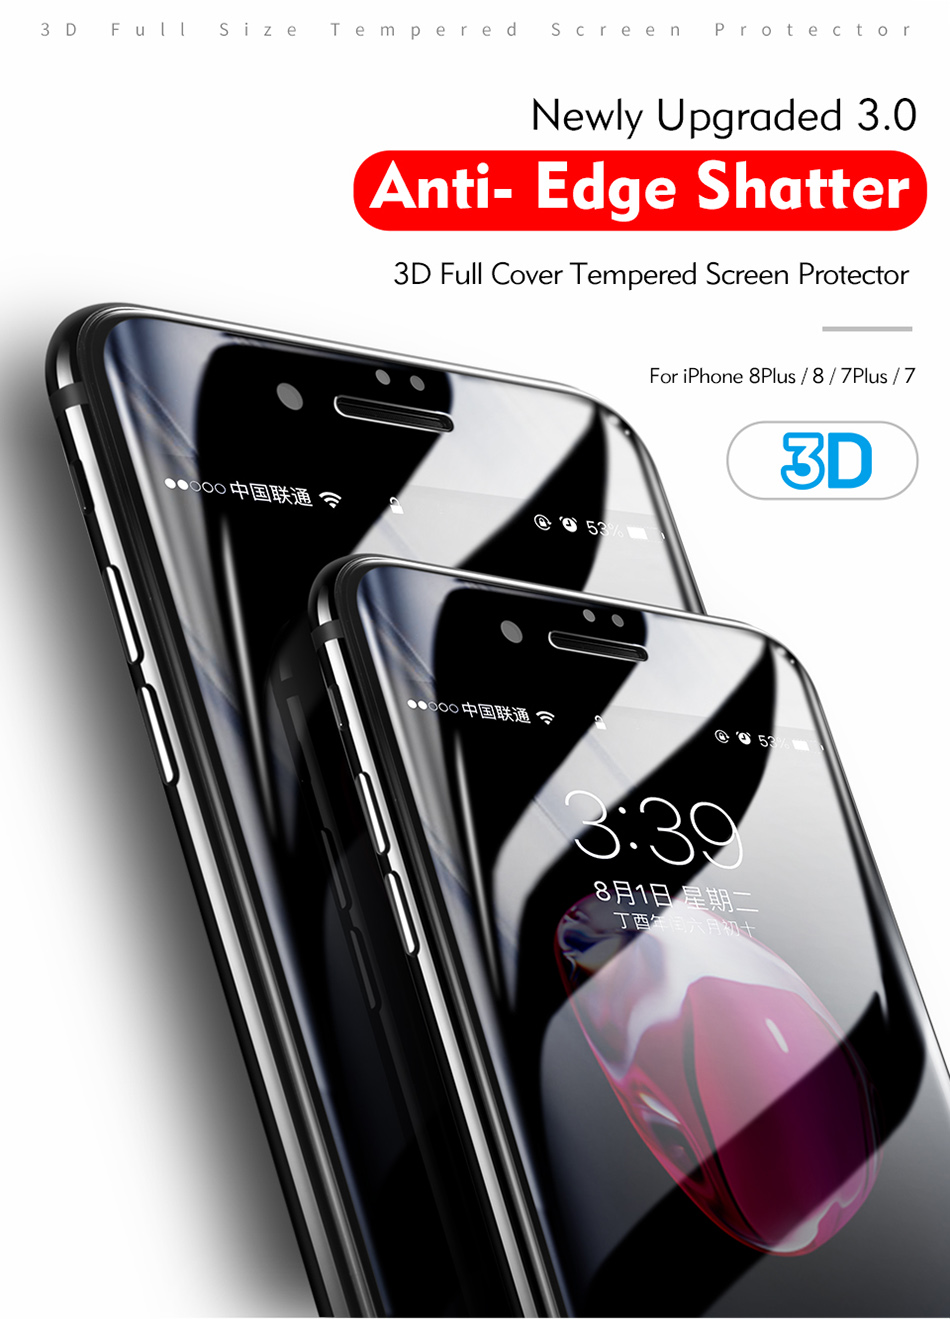 Benks 3D Tempered Glass Film For iPhone x xs Full Curved Screen Protector 0.23mm Cover Protection Front Film For iphone 8 Plus (1)